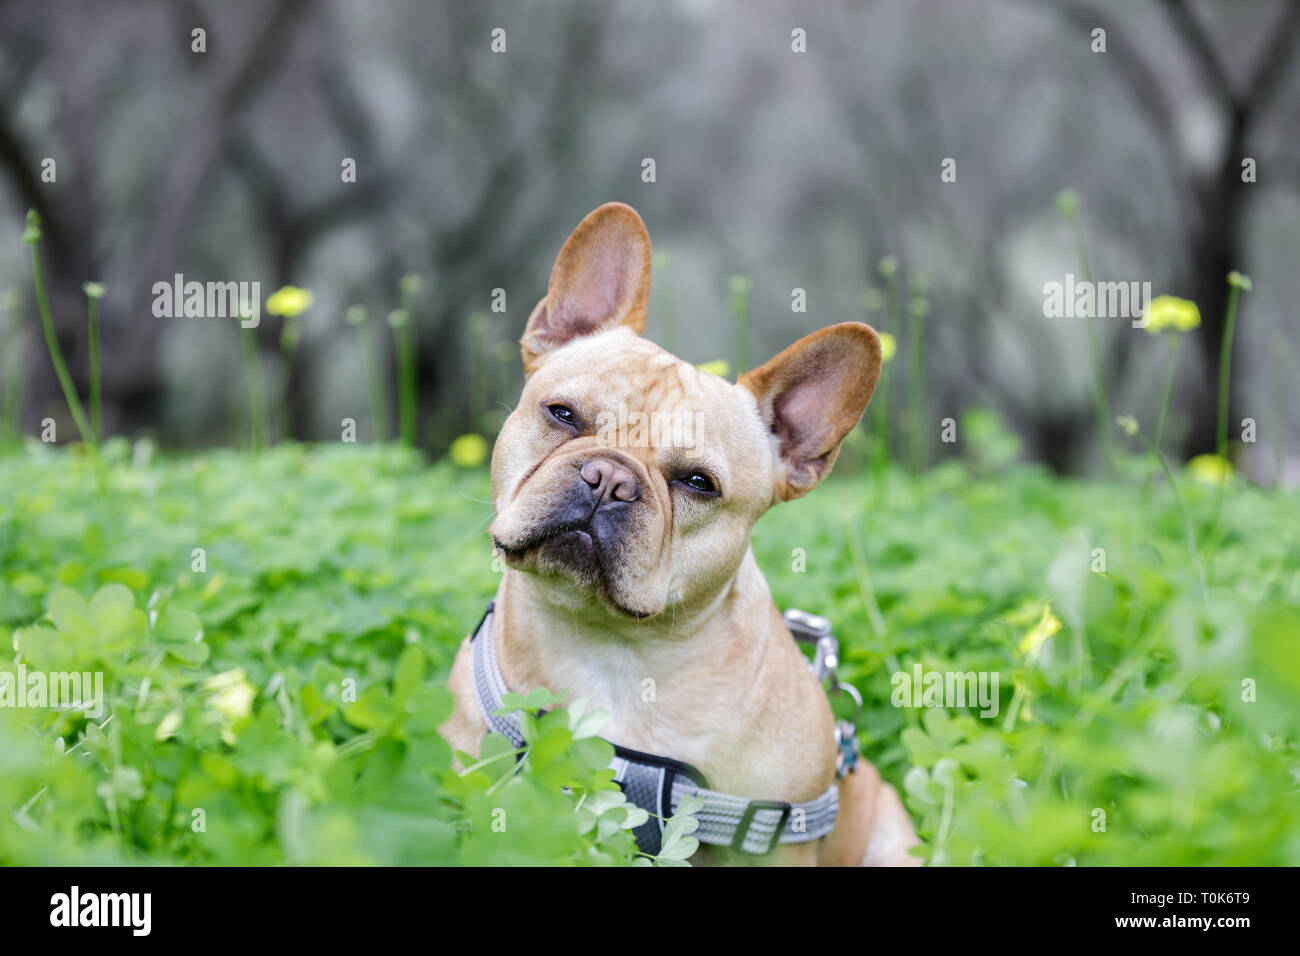 Young Frenchie Tilting Head in front of Olive Tree Grove. - Stock Image